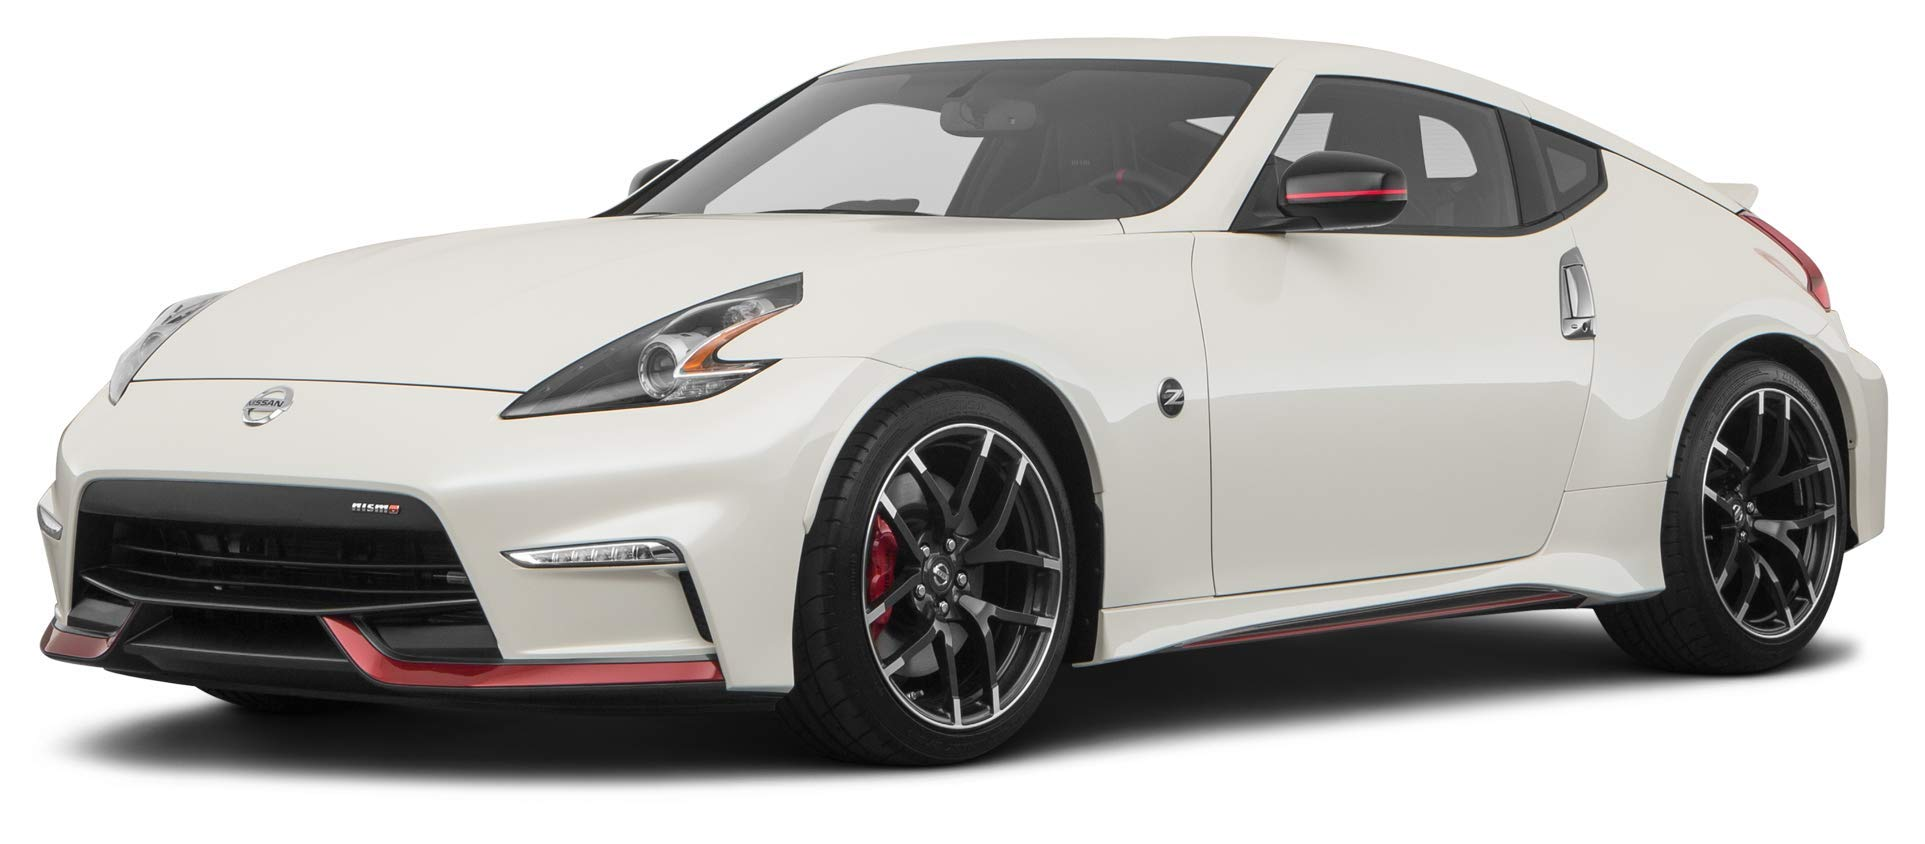 White Nismo 370z Luxury Amazon 2019 Porsche 718 Cayman Reviews and